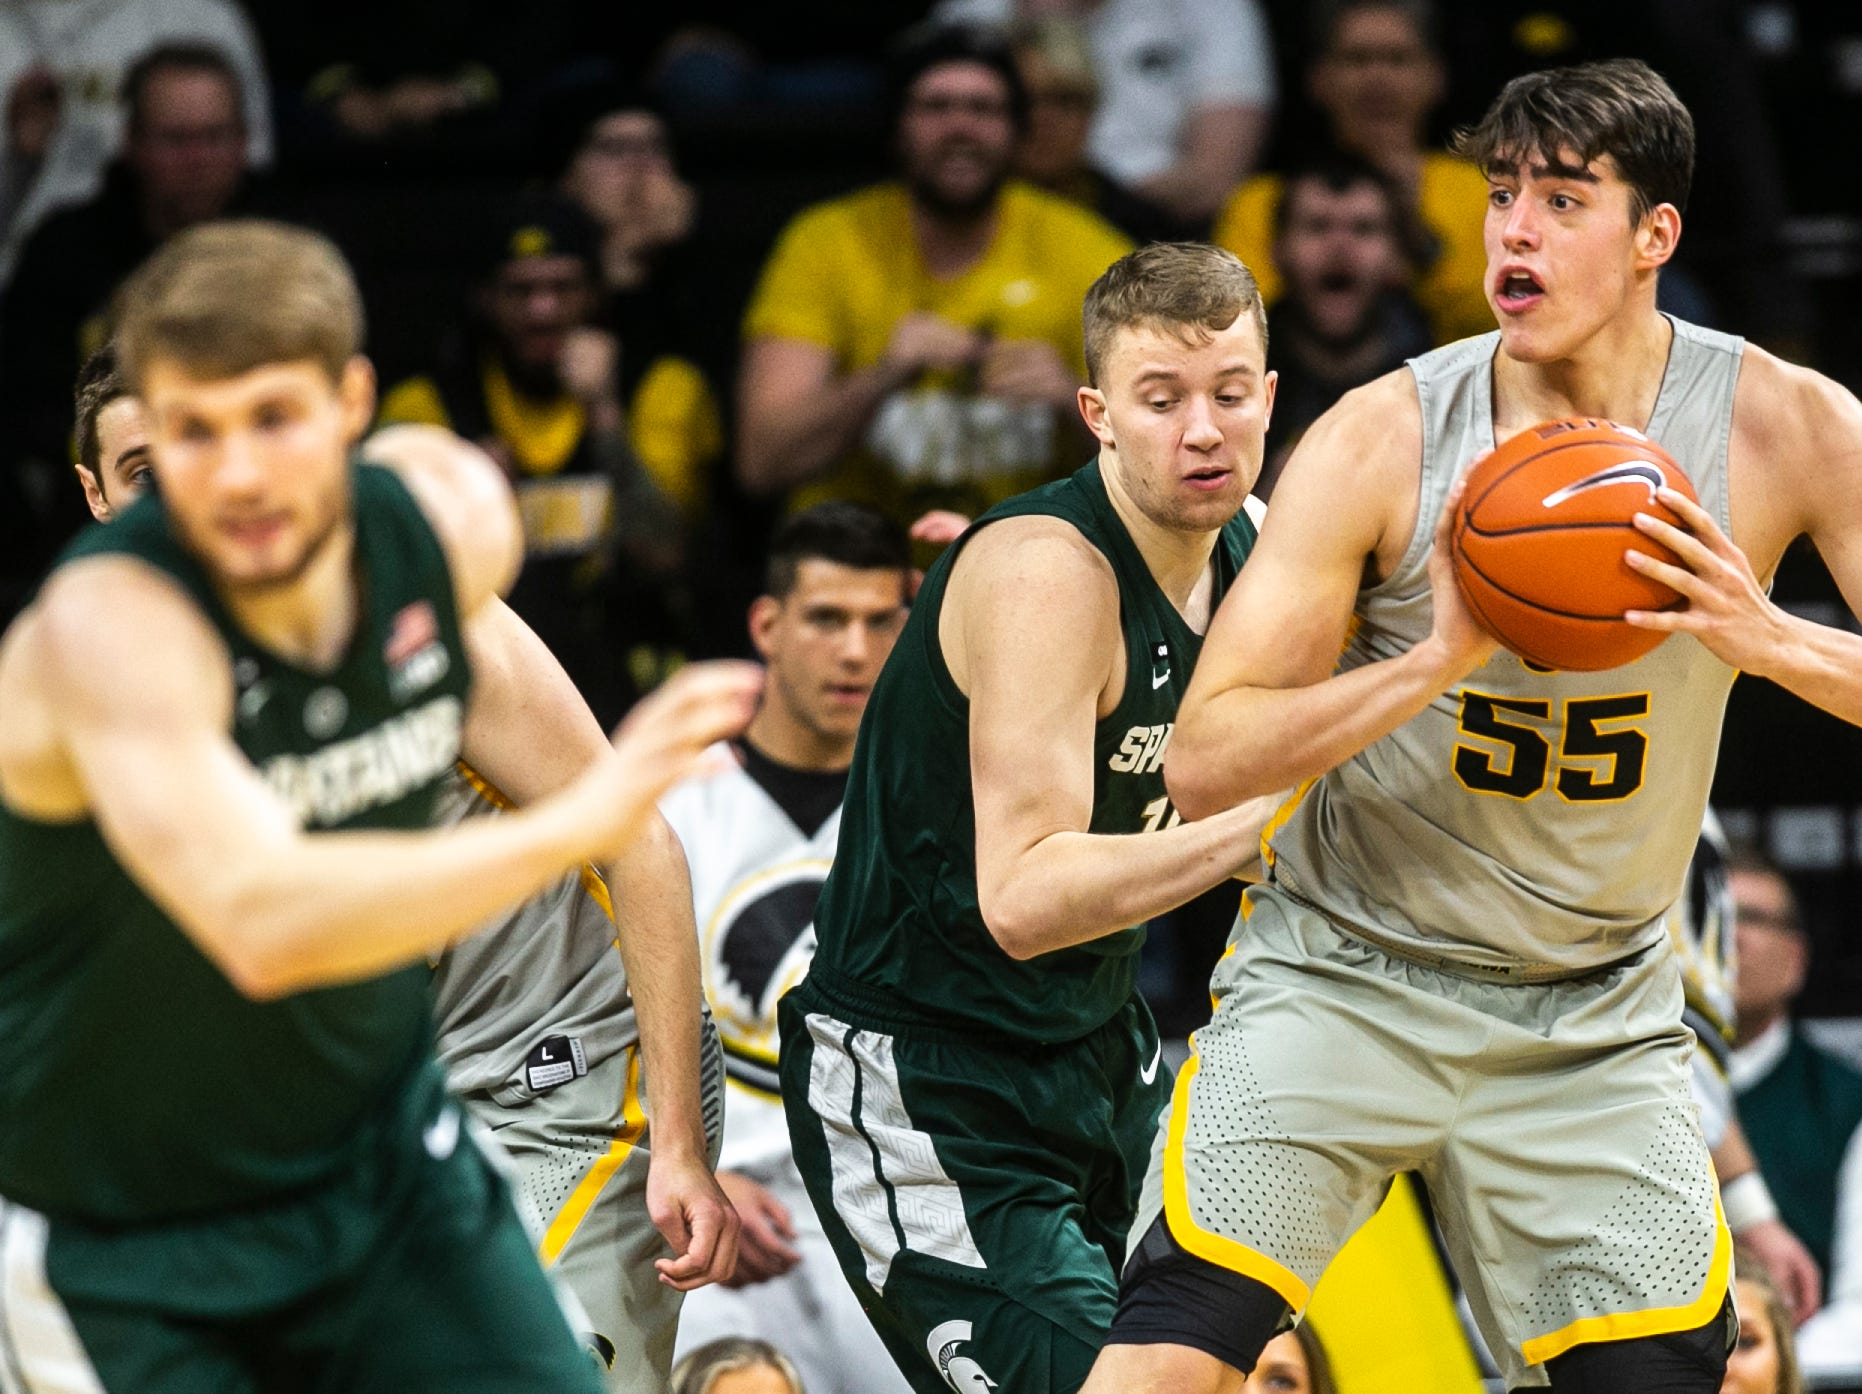 Iowa forward Luka Garza (55) grabs a rebound during a NCAA Big Ten Conference men's basketball game on Thursday, Jan. 24, 2019, at Carver-Hawkeye Arena in Iowa City, Iowa.